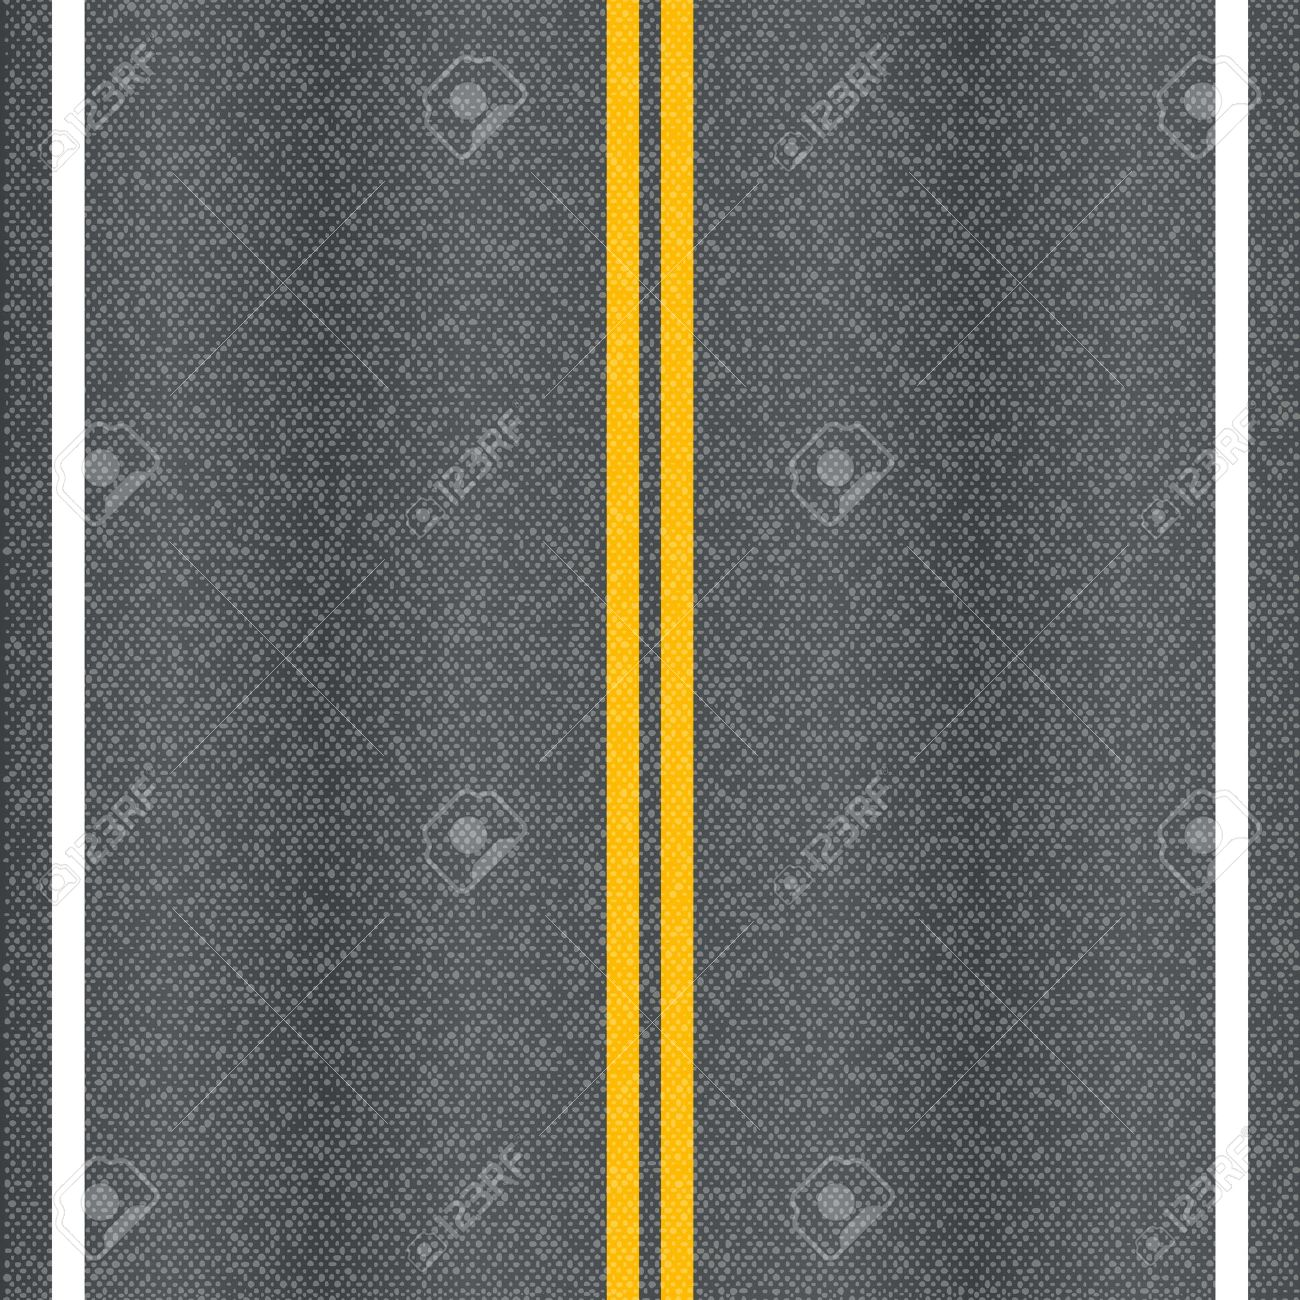 Asphalt road texture with marking lines - 18088973